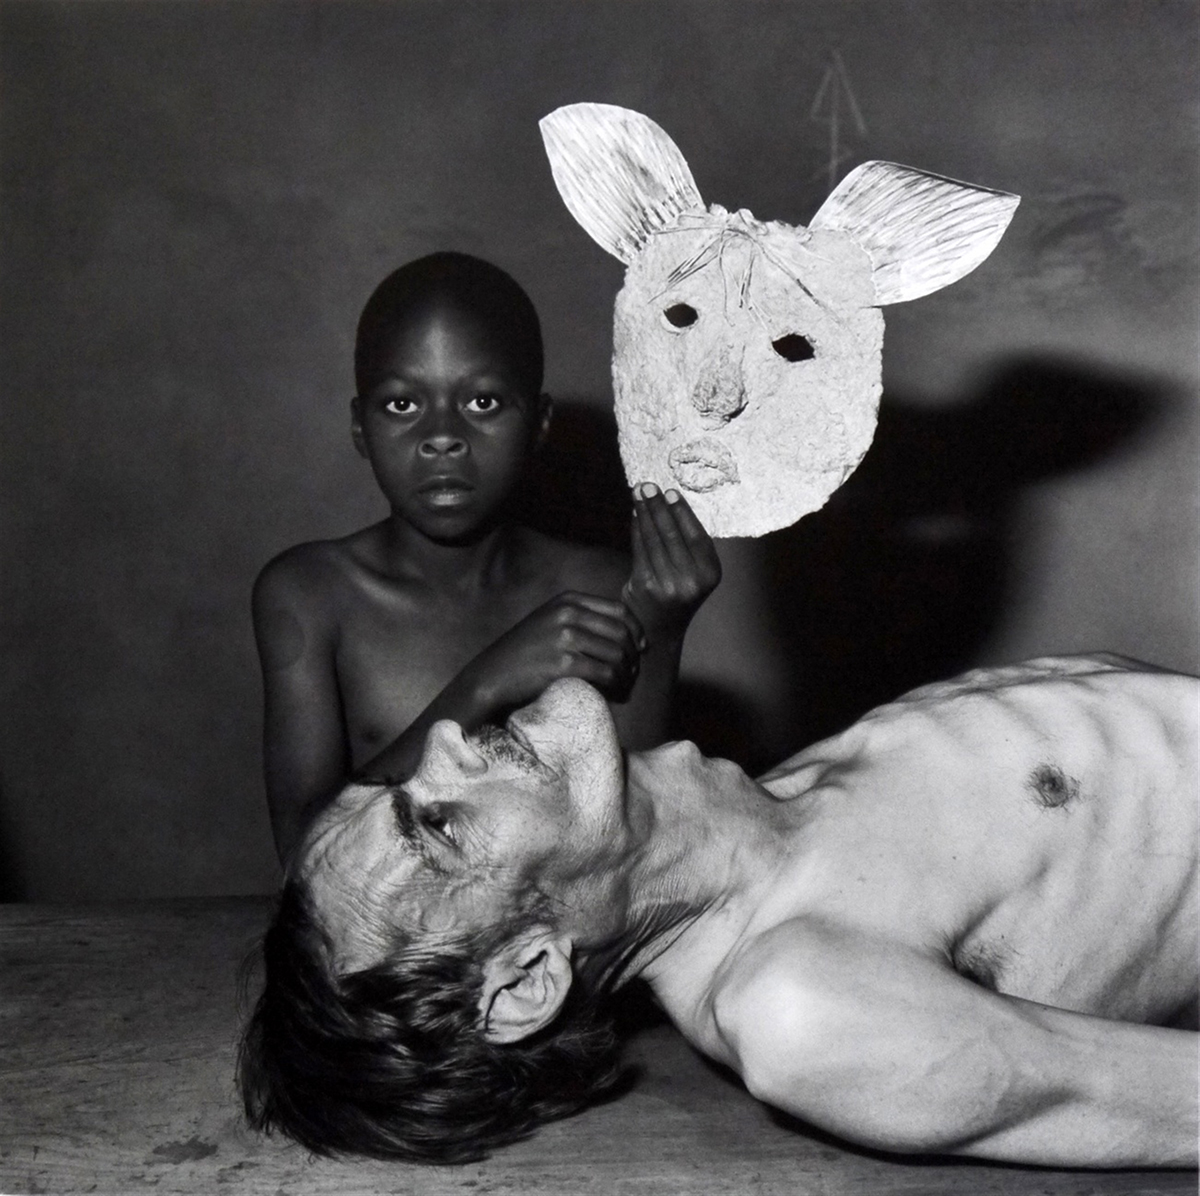 Tommy, Samson and a mask, 2000, Roger Ballen.